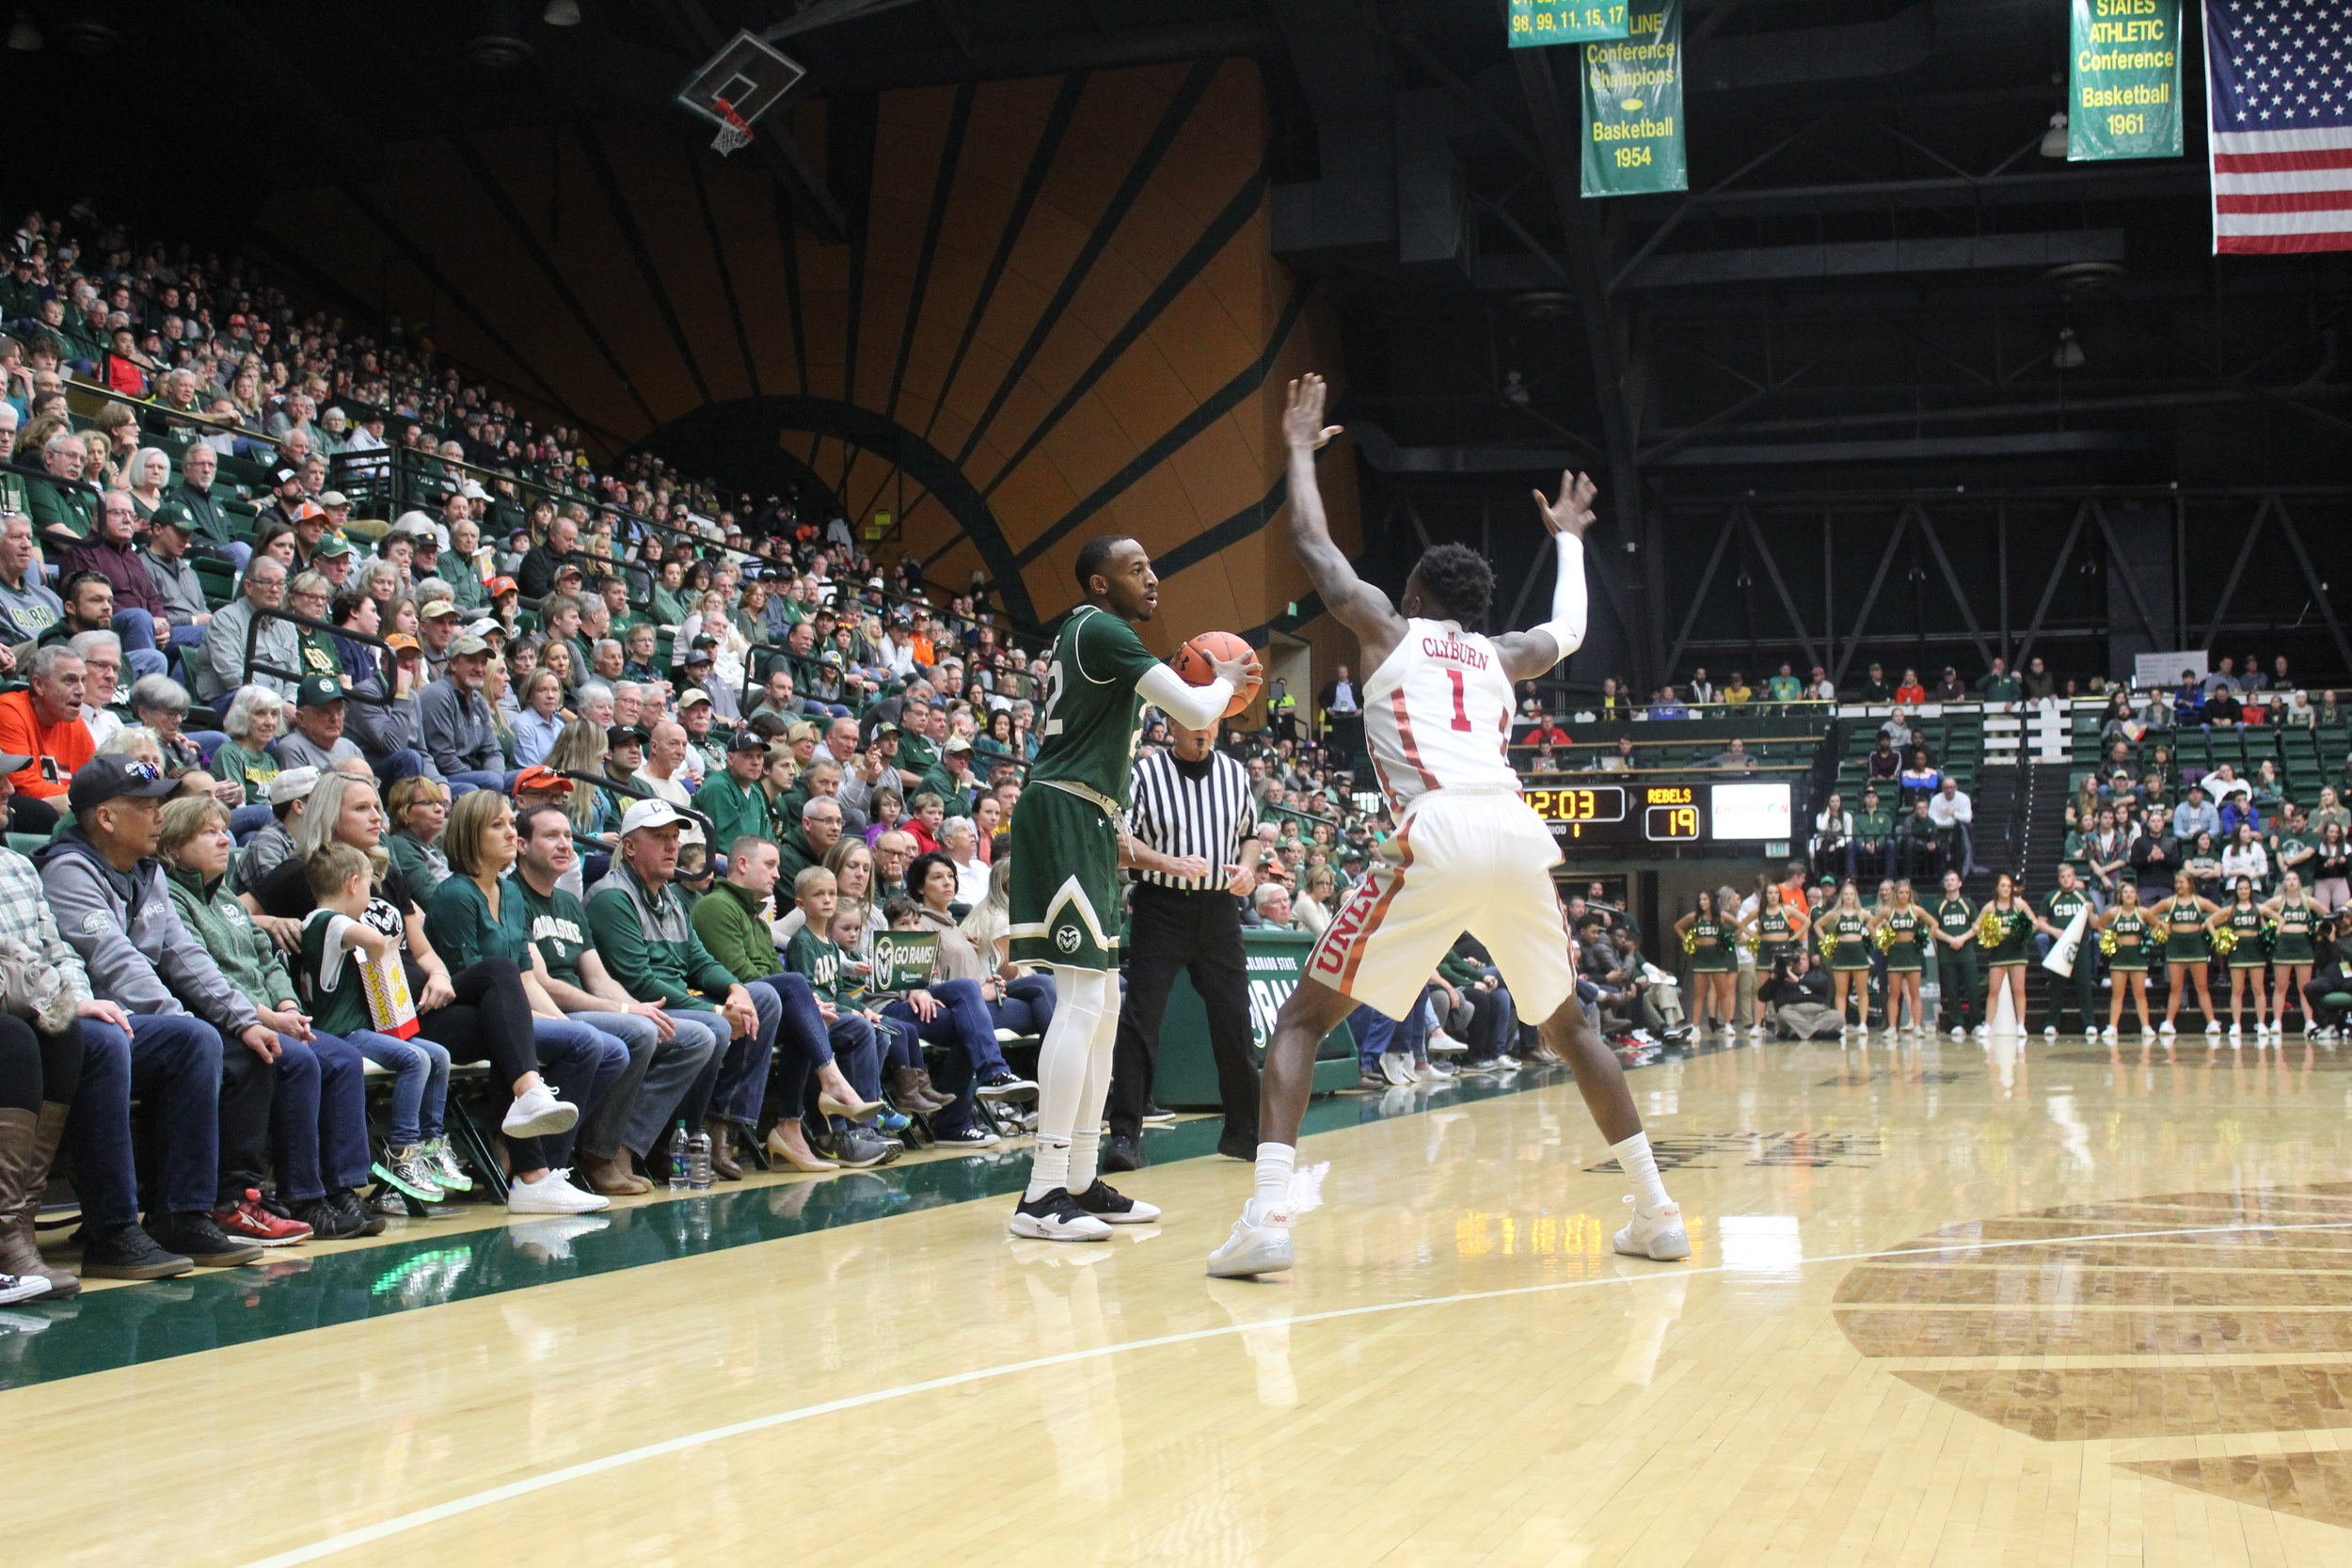 J.D. Paige prepares to shoot a 3-pointer in the first half of Saturday's game vs. UNLV.